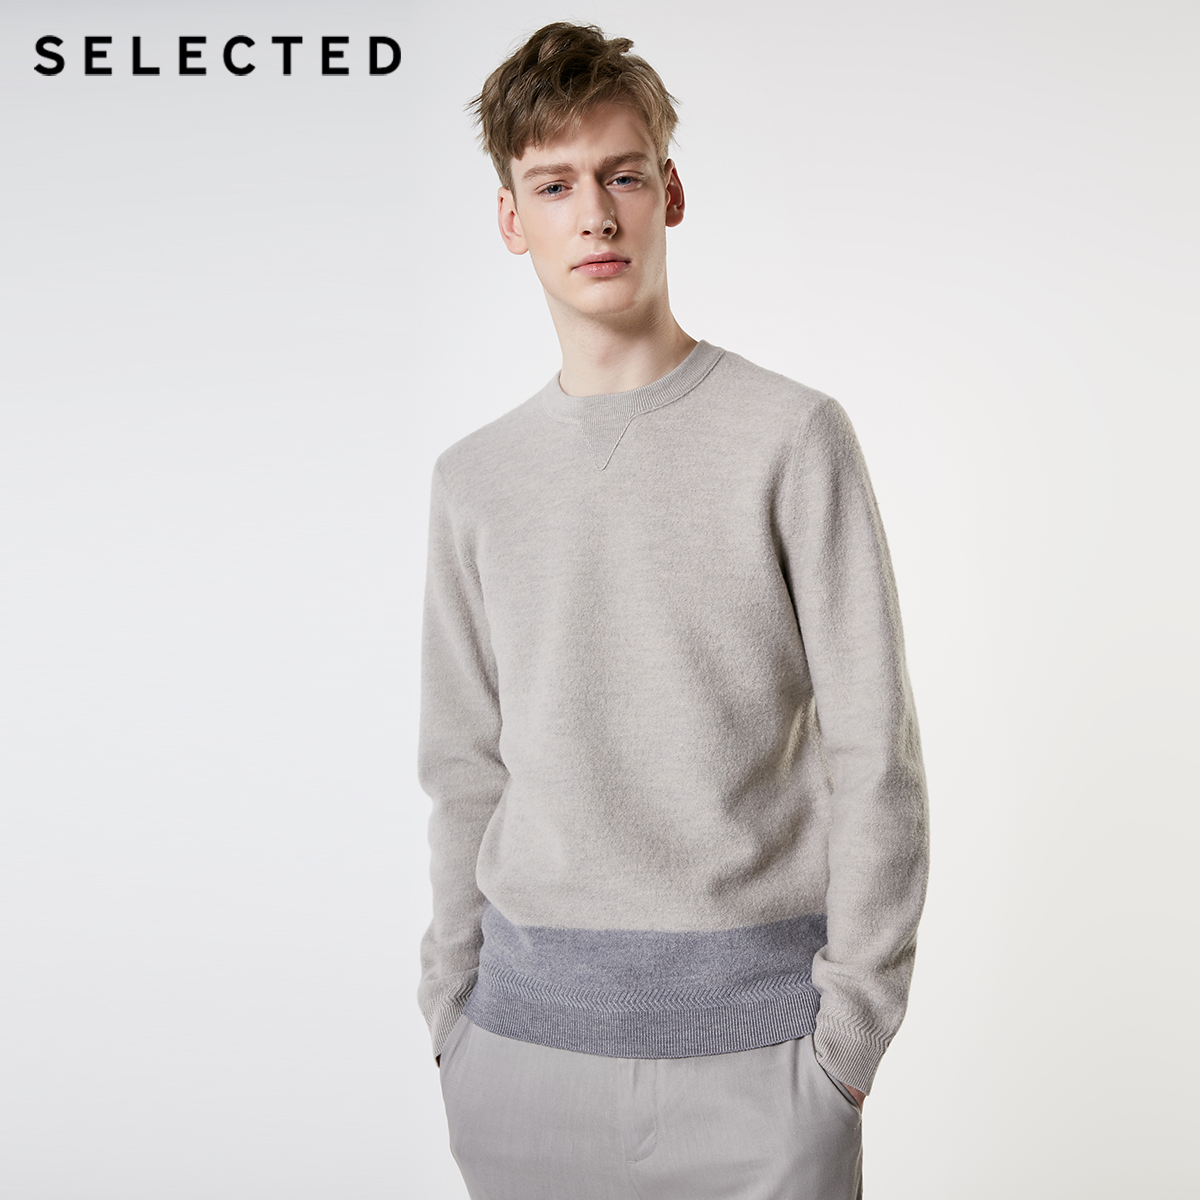 SELECTED Men's Woolen Assorted Colors Knit Clothes Round Neckline Sweater Pullover S | 419124560